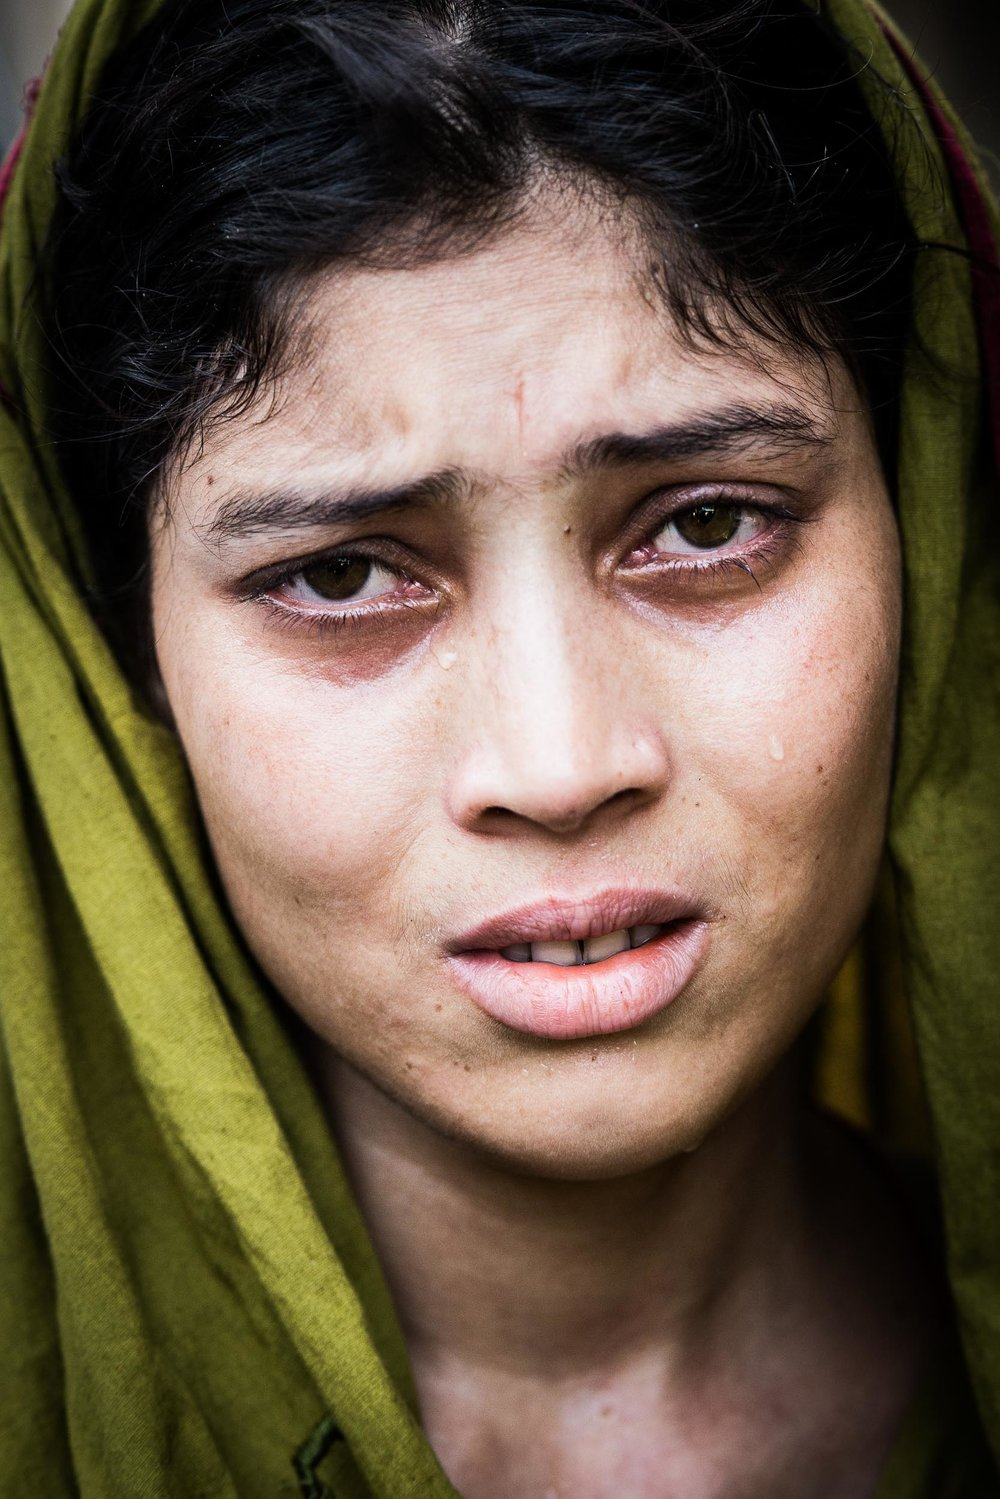 Bangladesh Rana Plaza woman - Travel - Photo credit Nicola Bailey.jpg